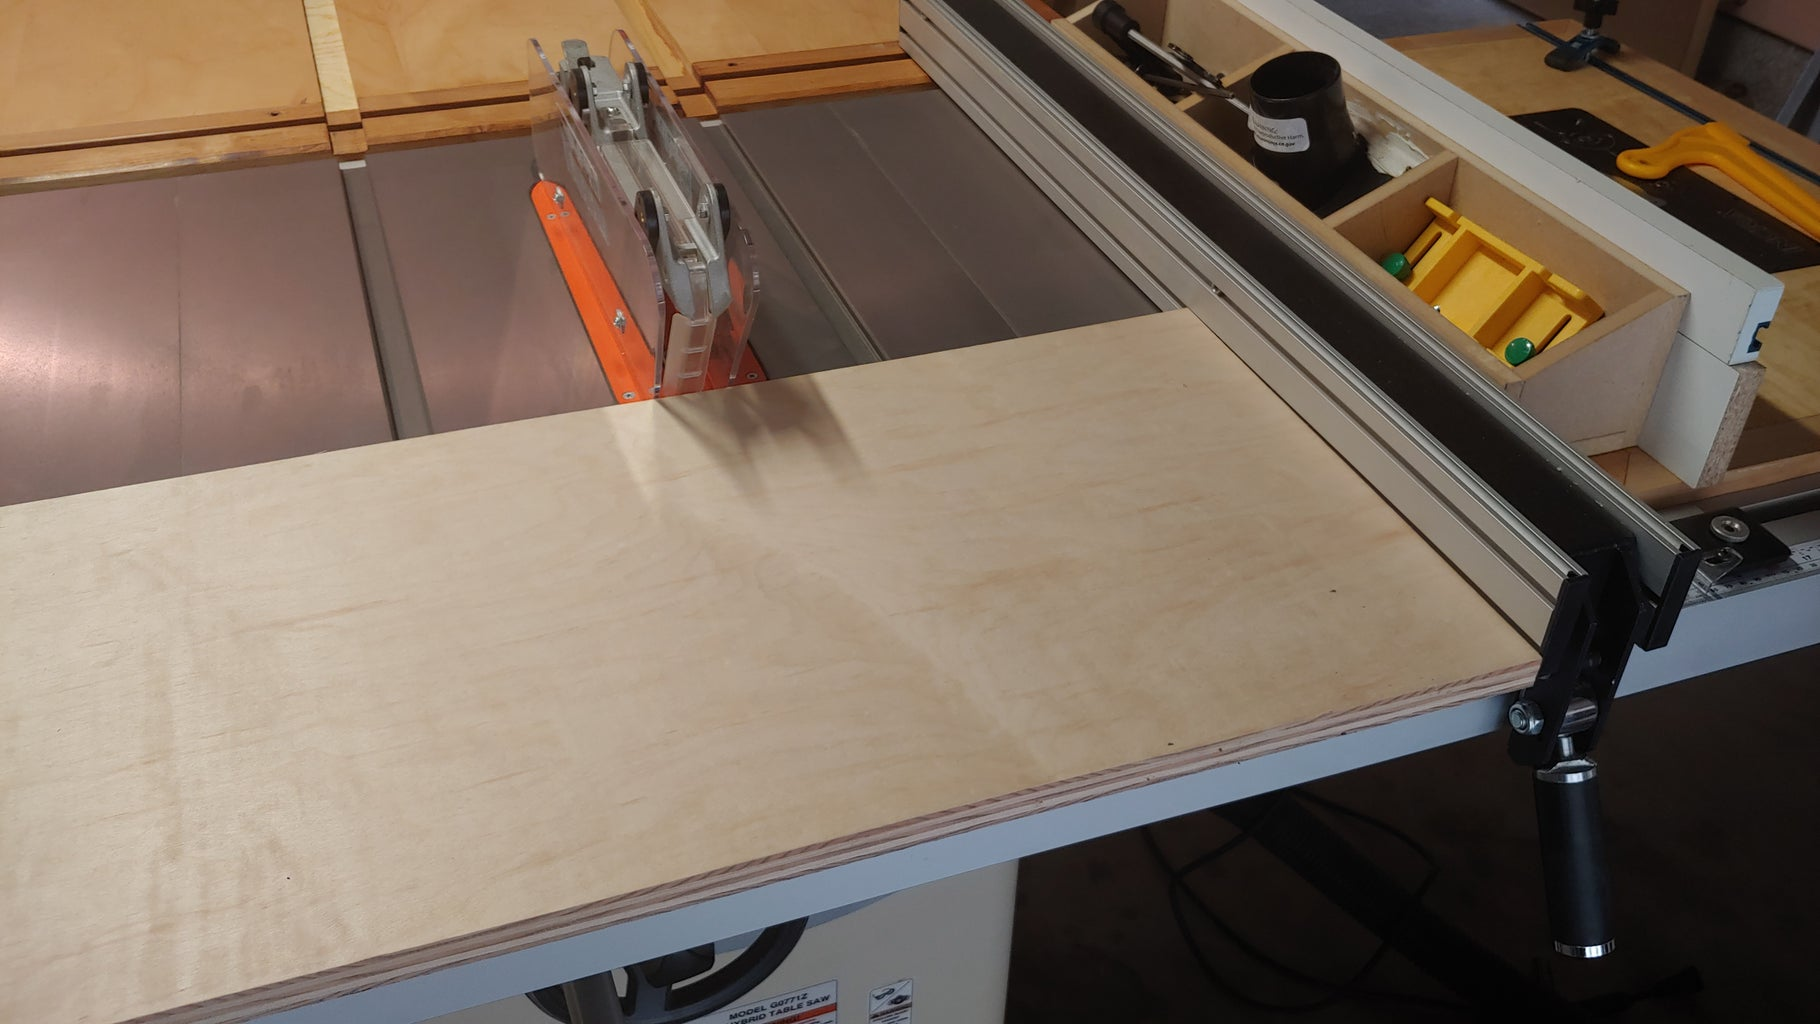 Step 1: Cut the Plywood Base and Top